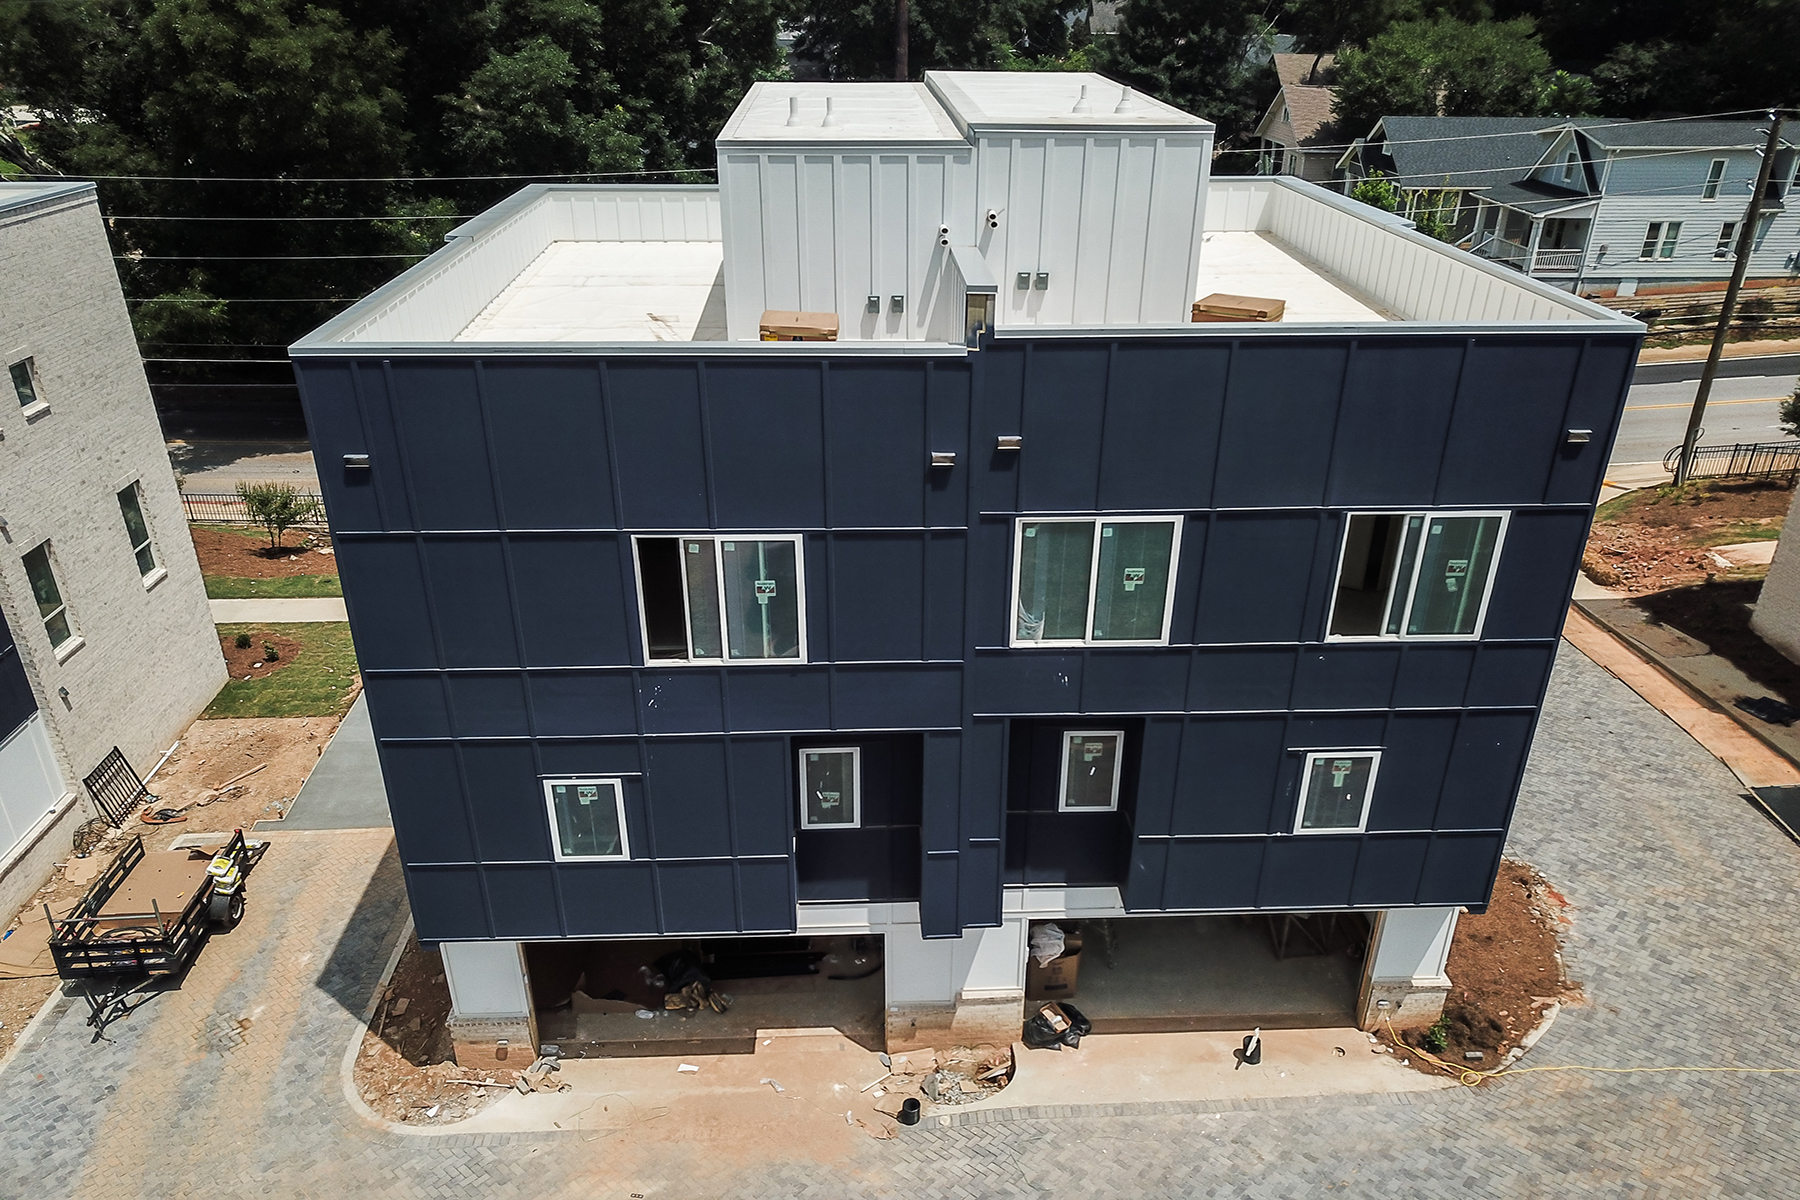 Additional photo for property listing at 62 Modern and Innovative Townhomes Featuring Rooftop Decks 2029 Memorial Drive #2 Atlanta, 喬治亞州 30317 美國